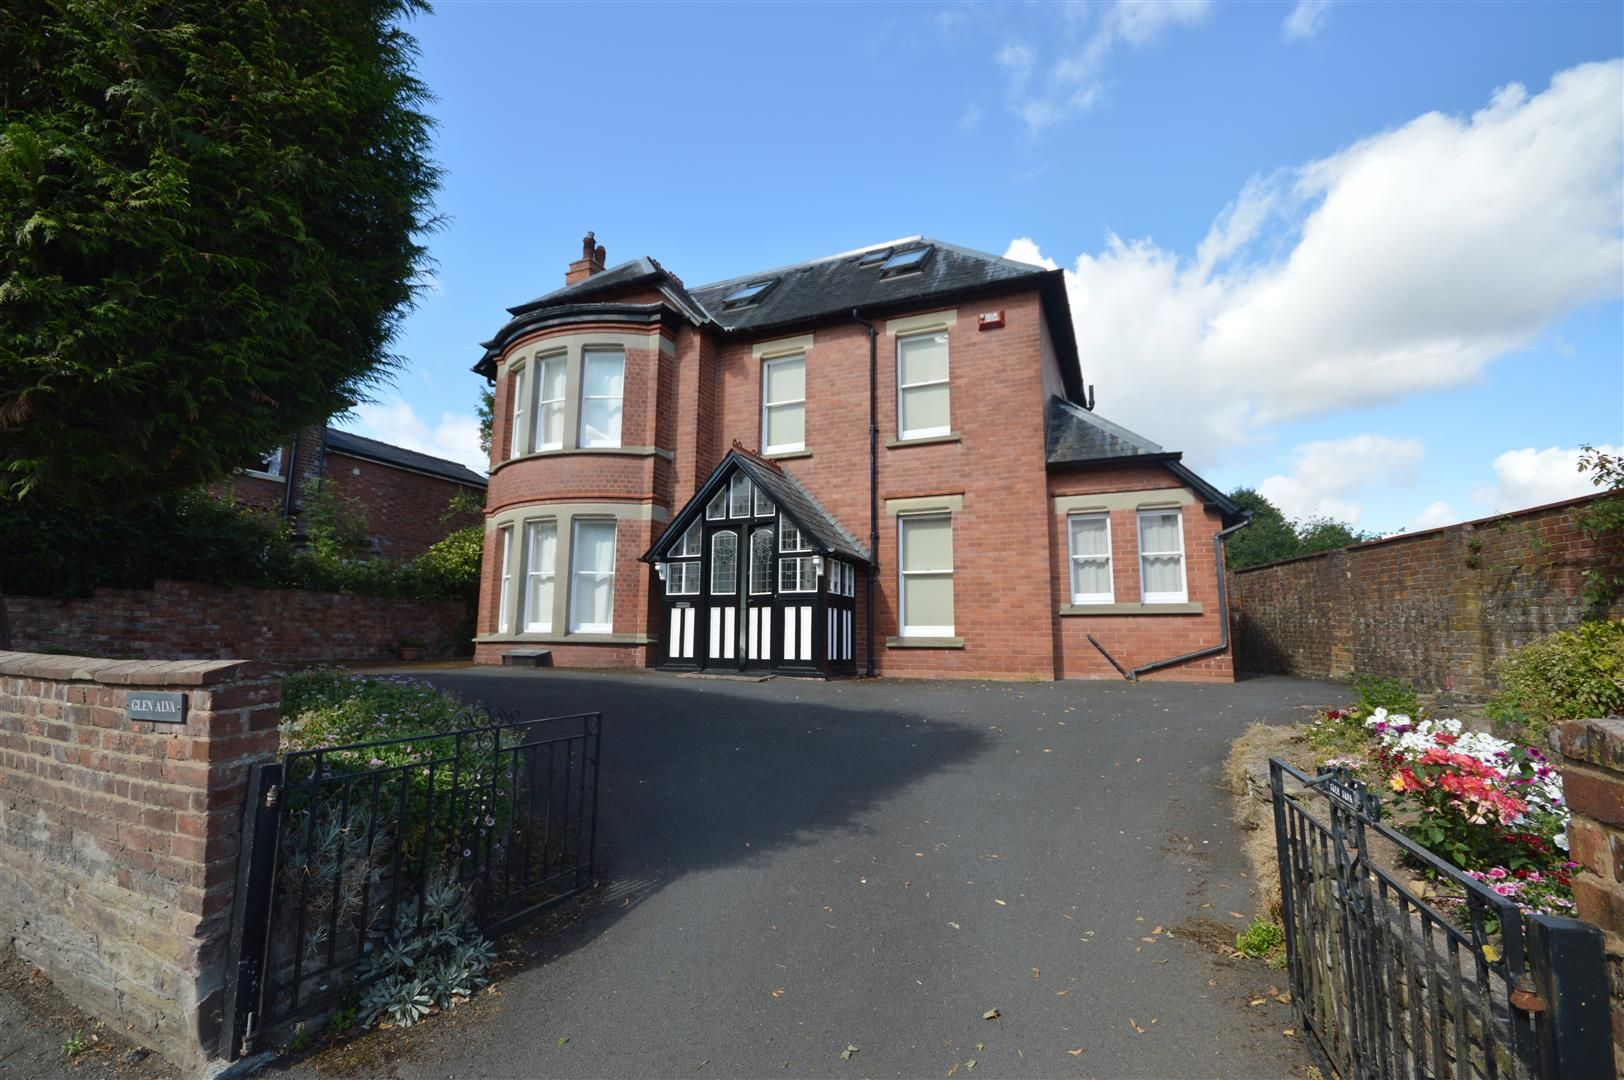 6 bed detached for sale in Leominster 1